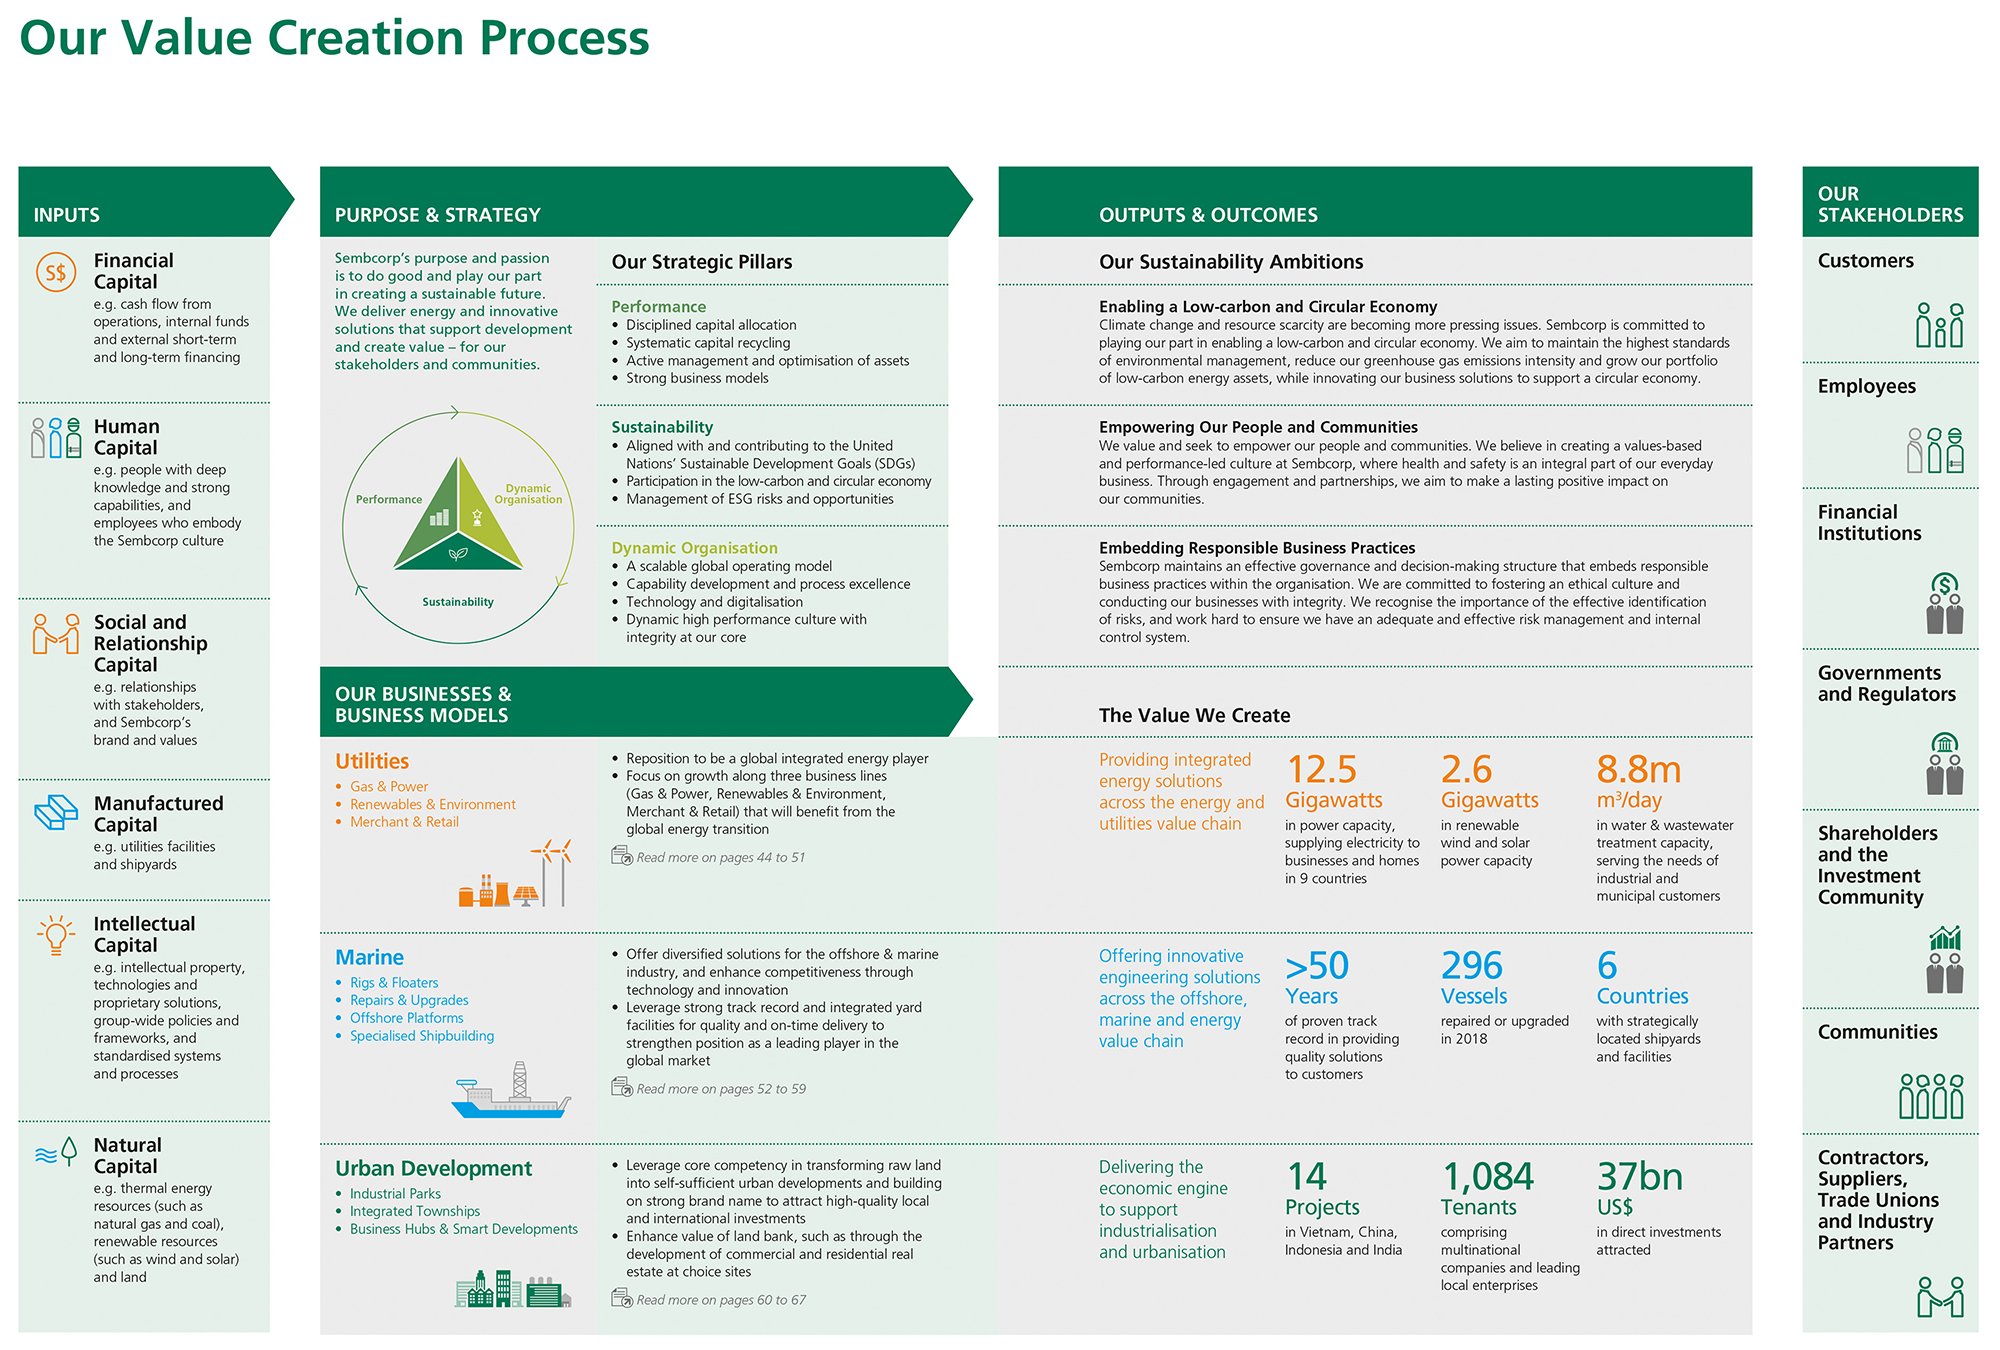 Sembcorp Industries Annual Report 2018